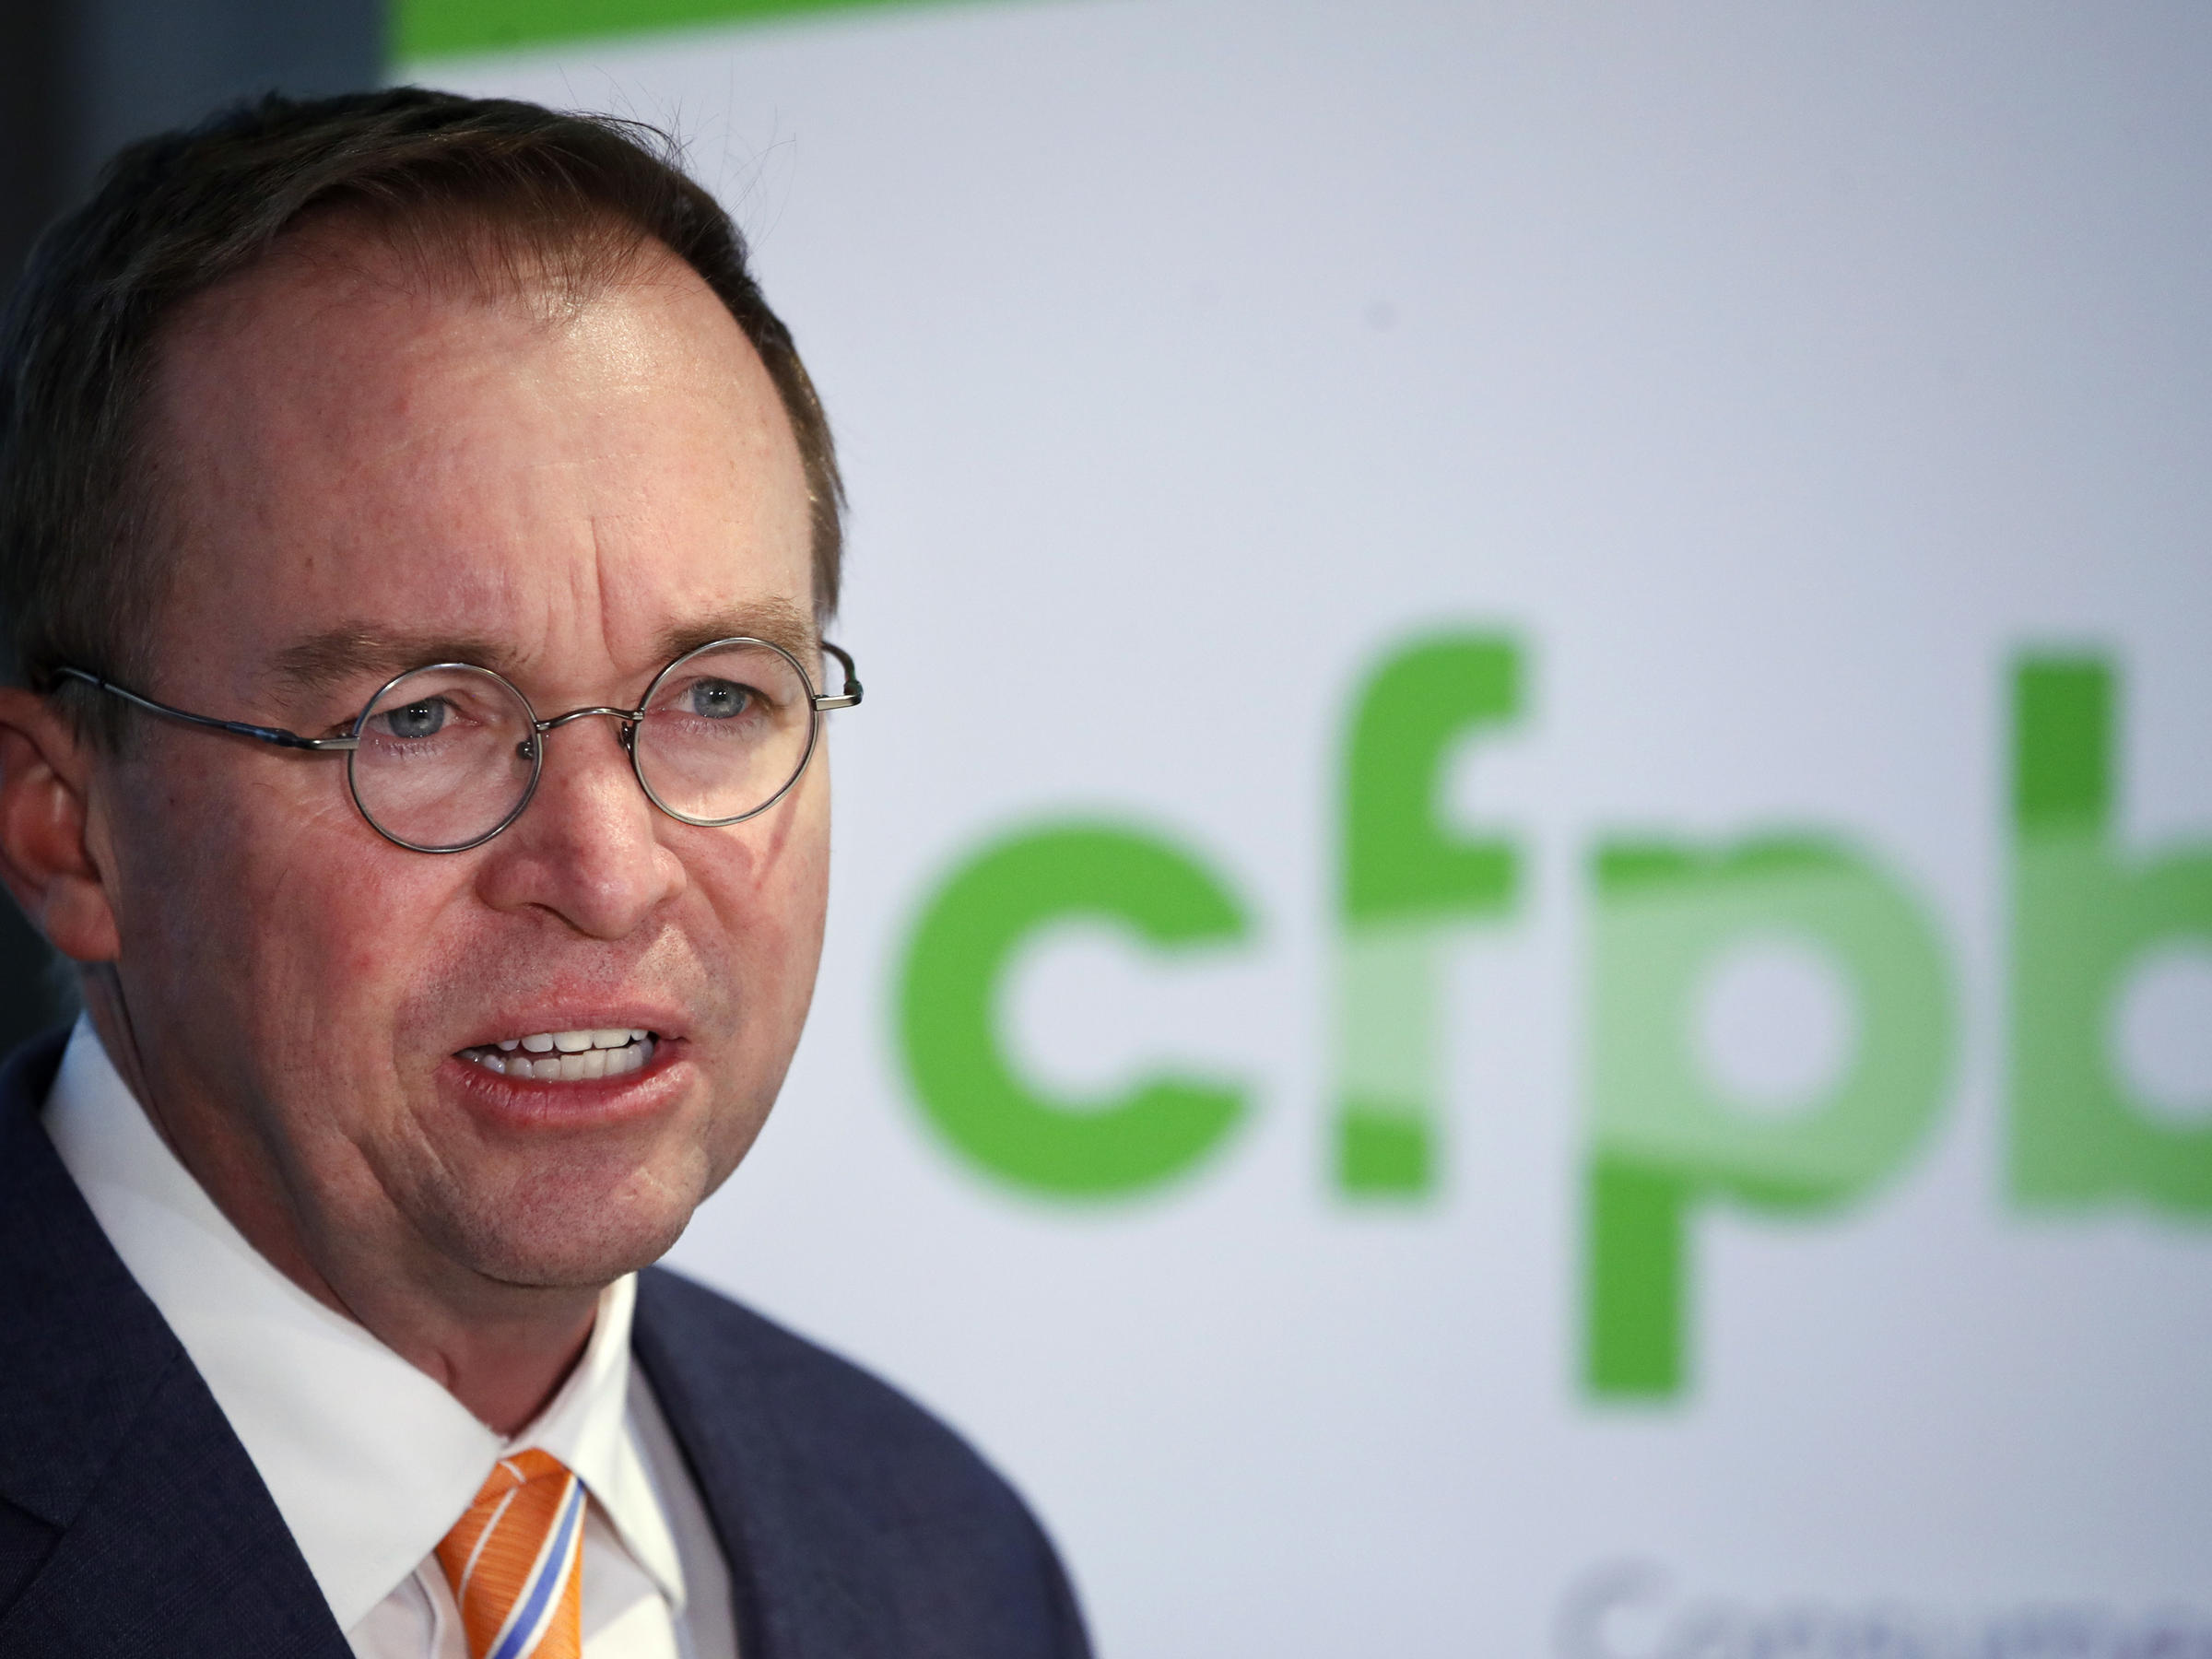 Trump Probably Had the Right to Appoint Mulvaney